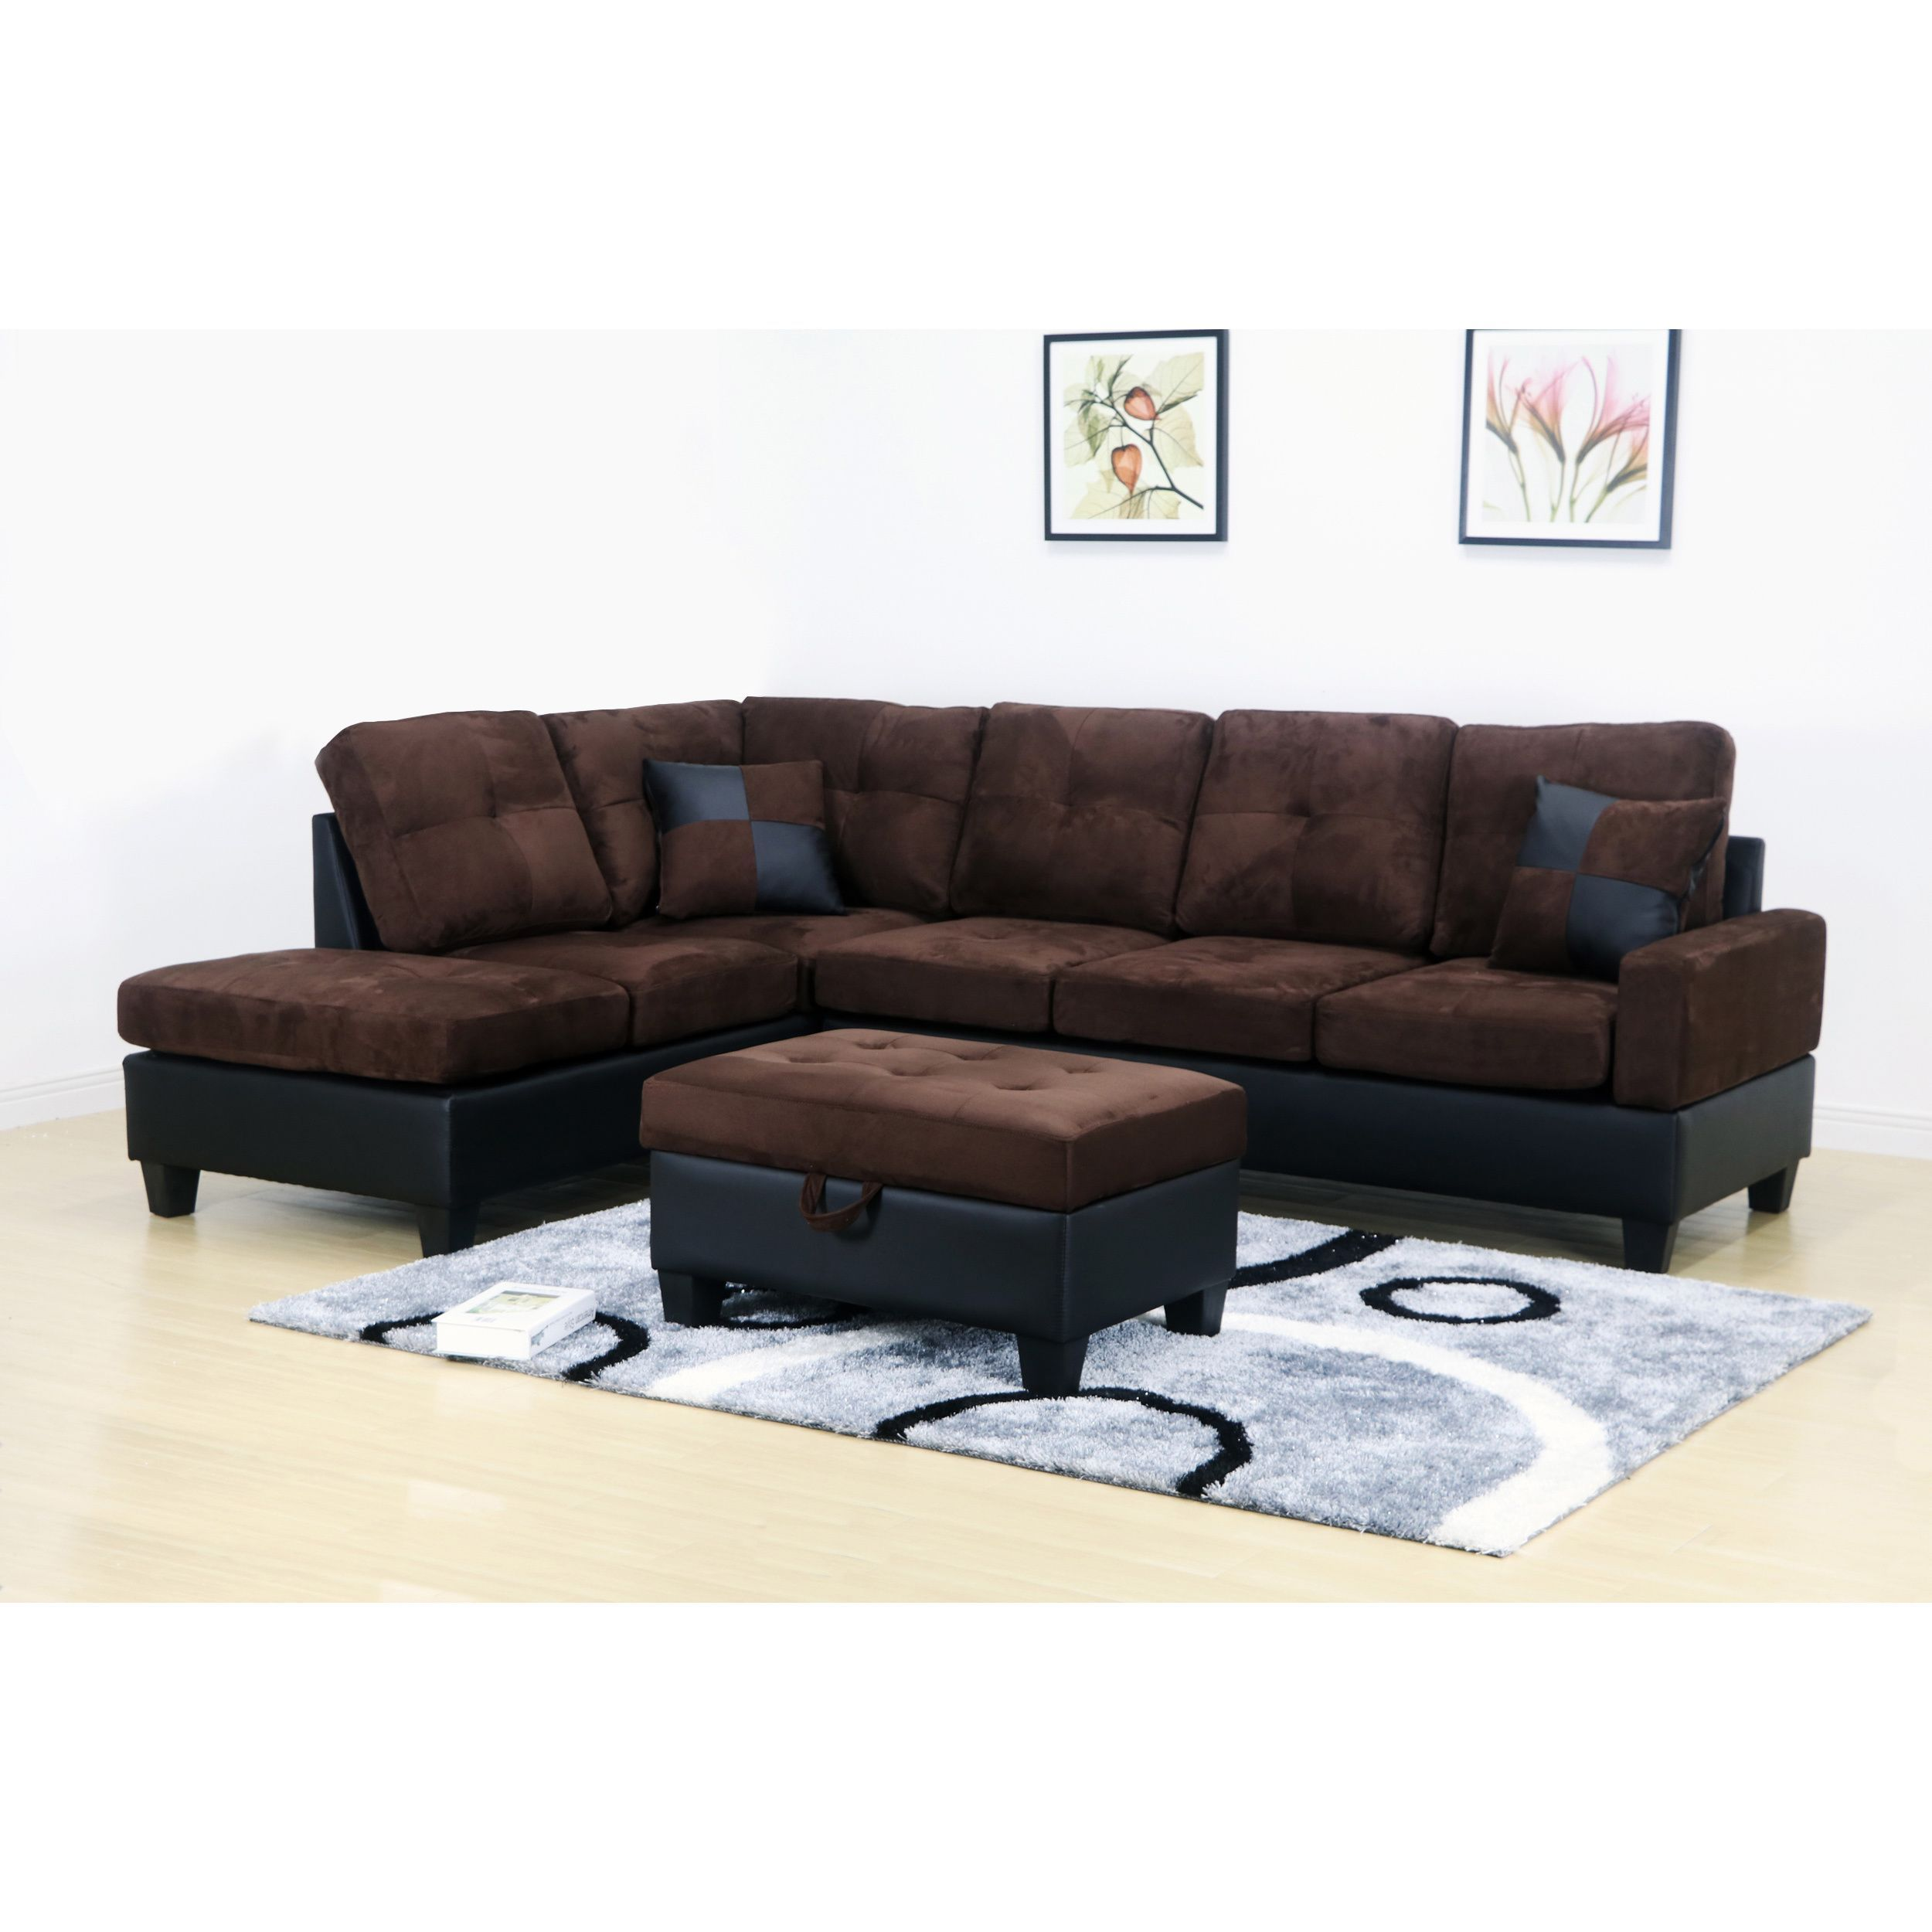 Charlie Dark Brown Microfiber Sectional Sofa And Storage Ottoman (Left  Chaise), Black (Faux Leather)